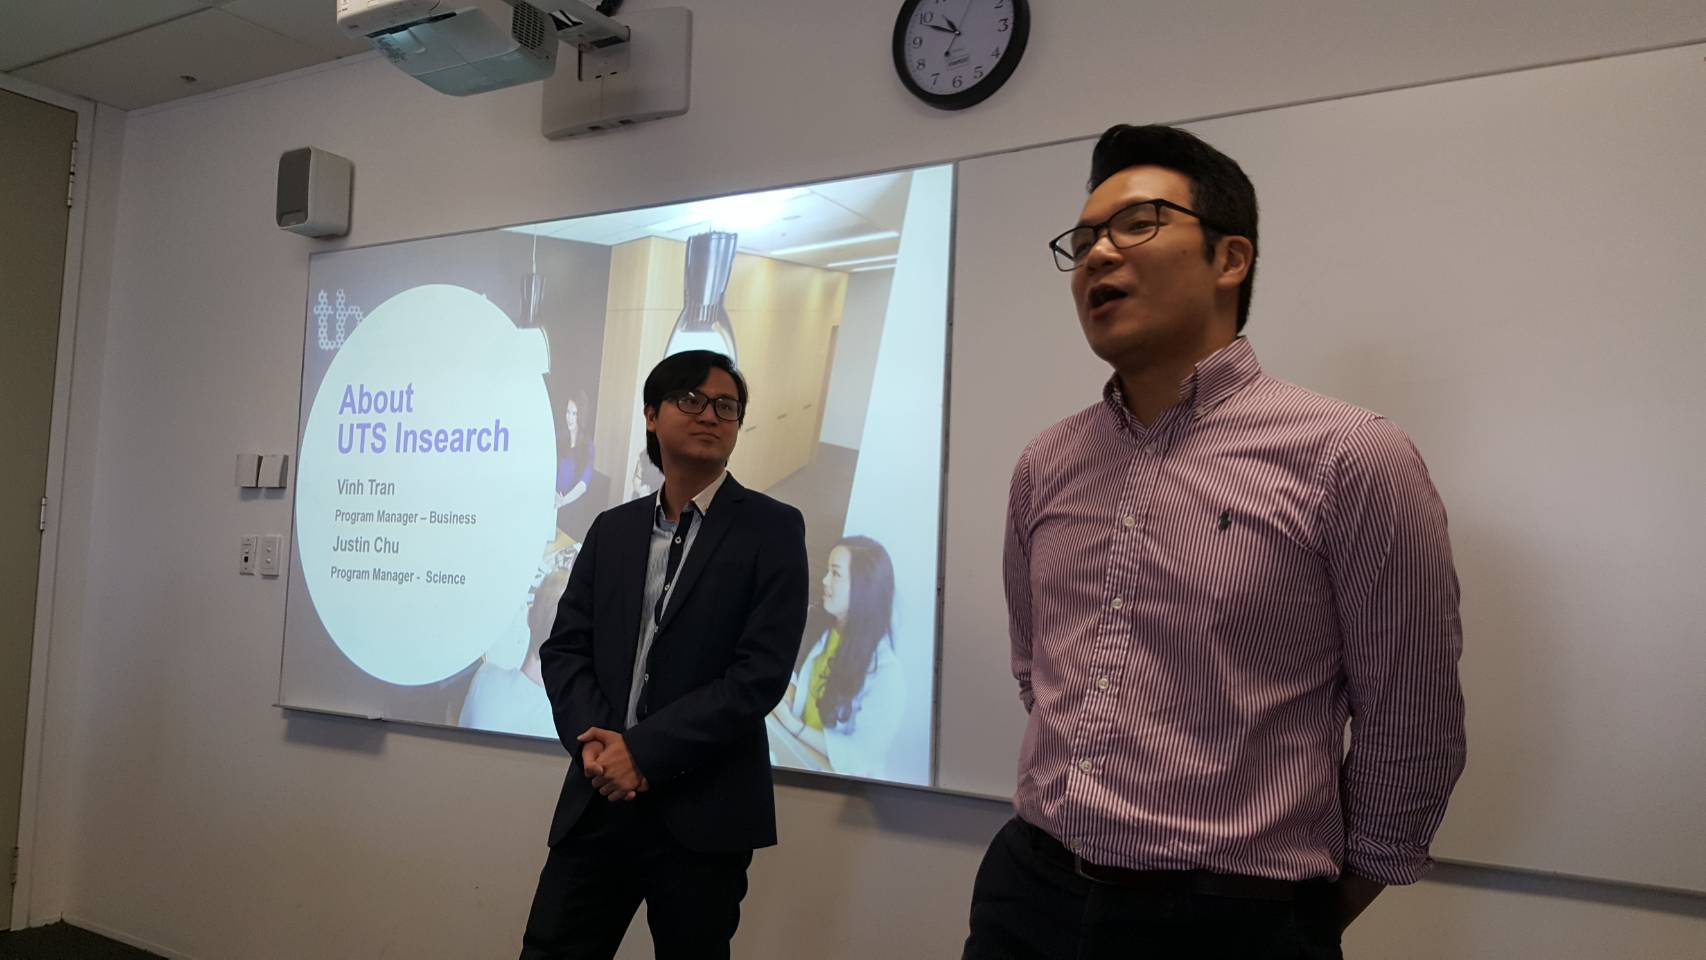 UTS INSEARCH  EDUCATION TRAINING WORKSHOP